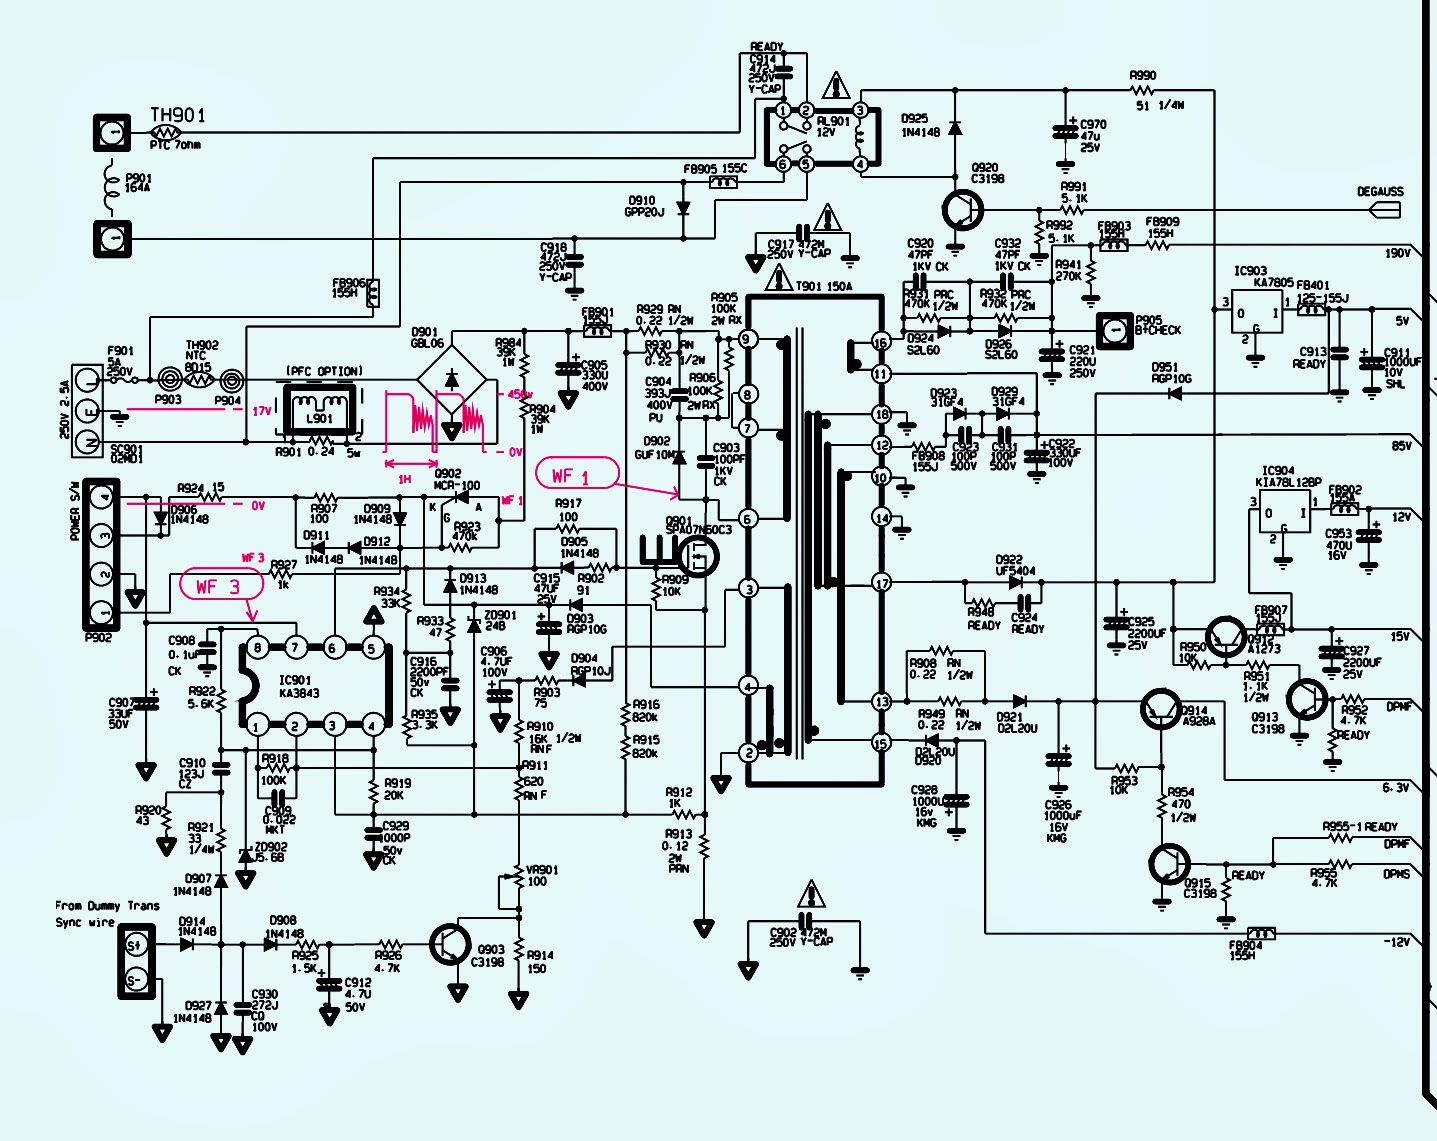 LG FLATRON F900B POWER SUPPLY SMPS SCHEMATIC